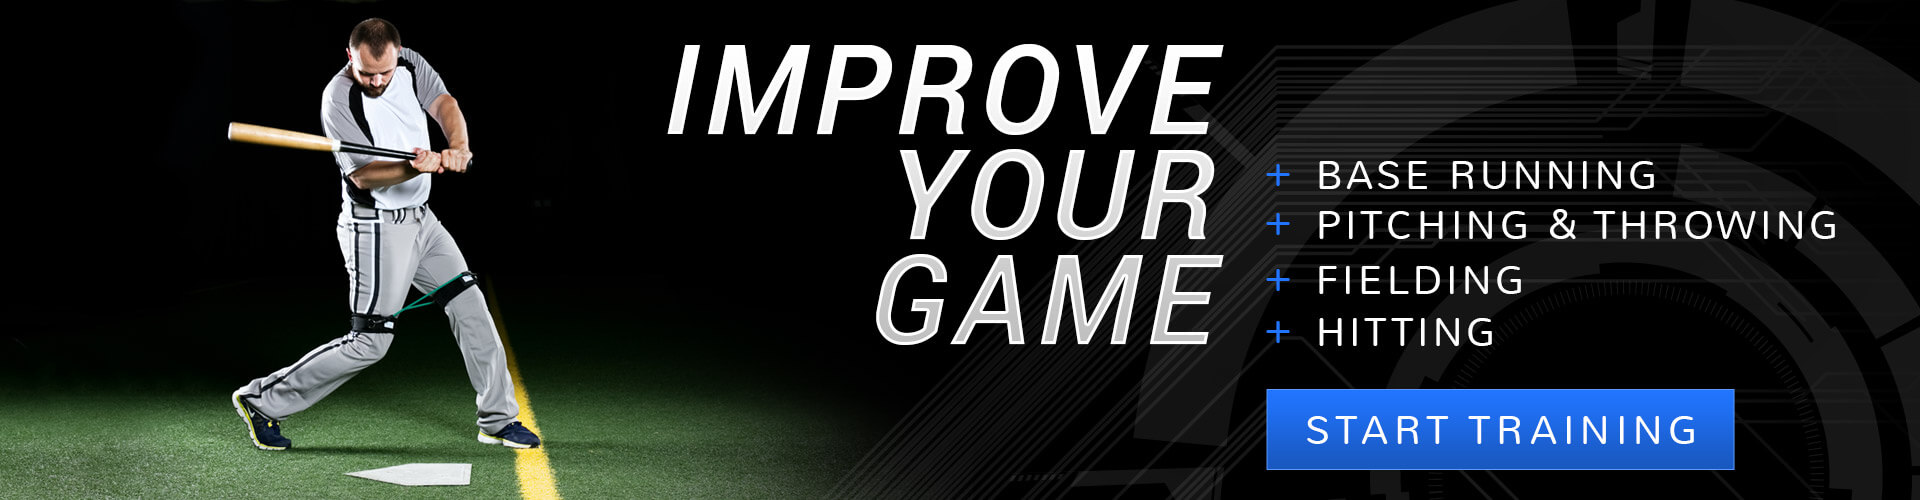 Improve baseball base running speed, pitching, throwing, fielding, and hitting using our resistance training products in your baseball training program.